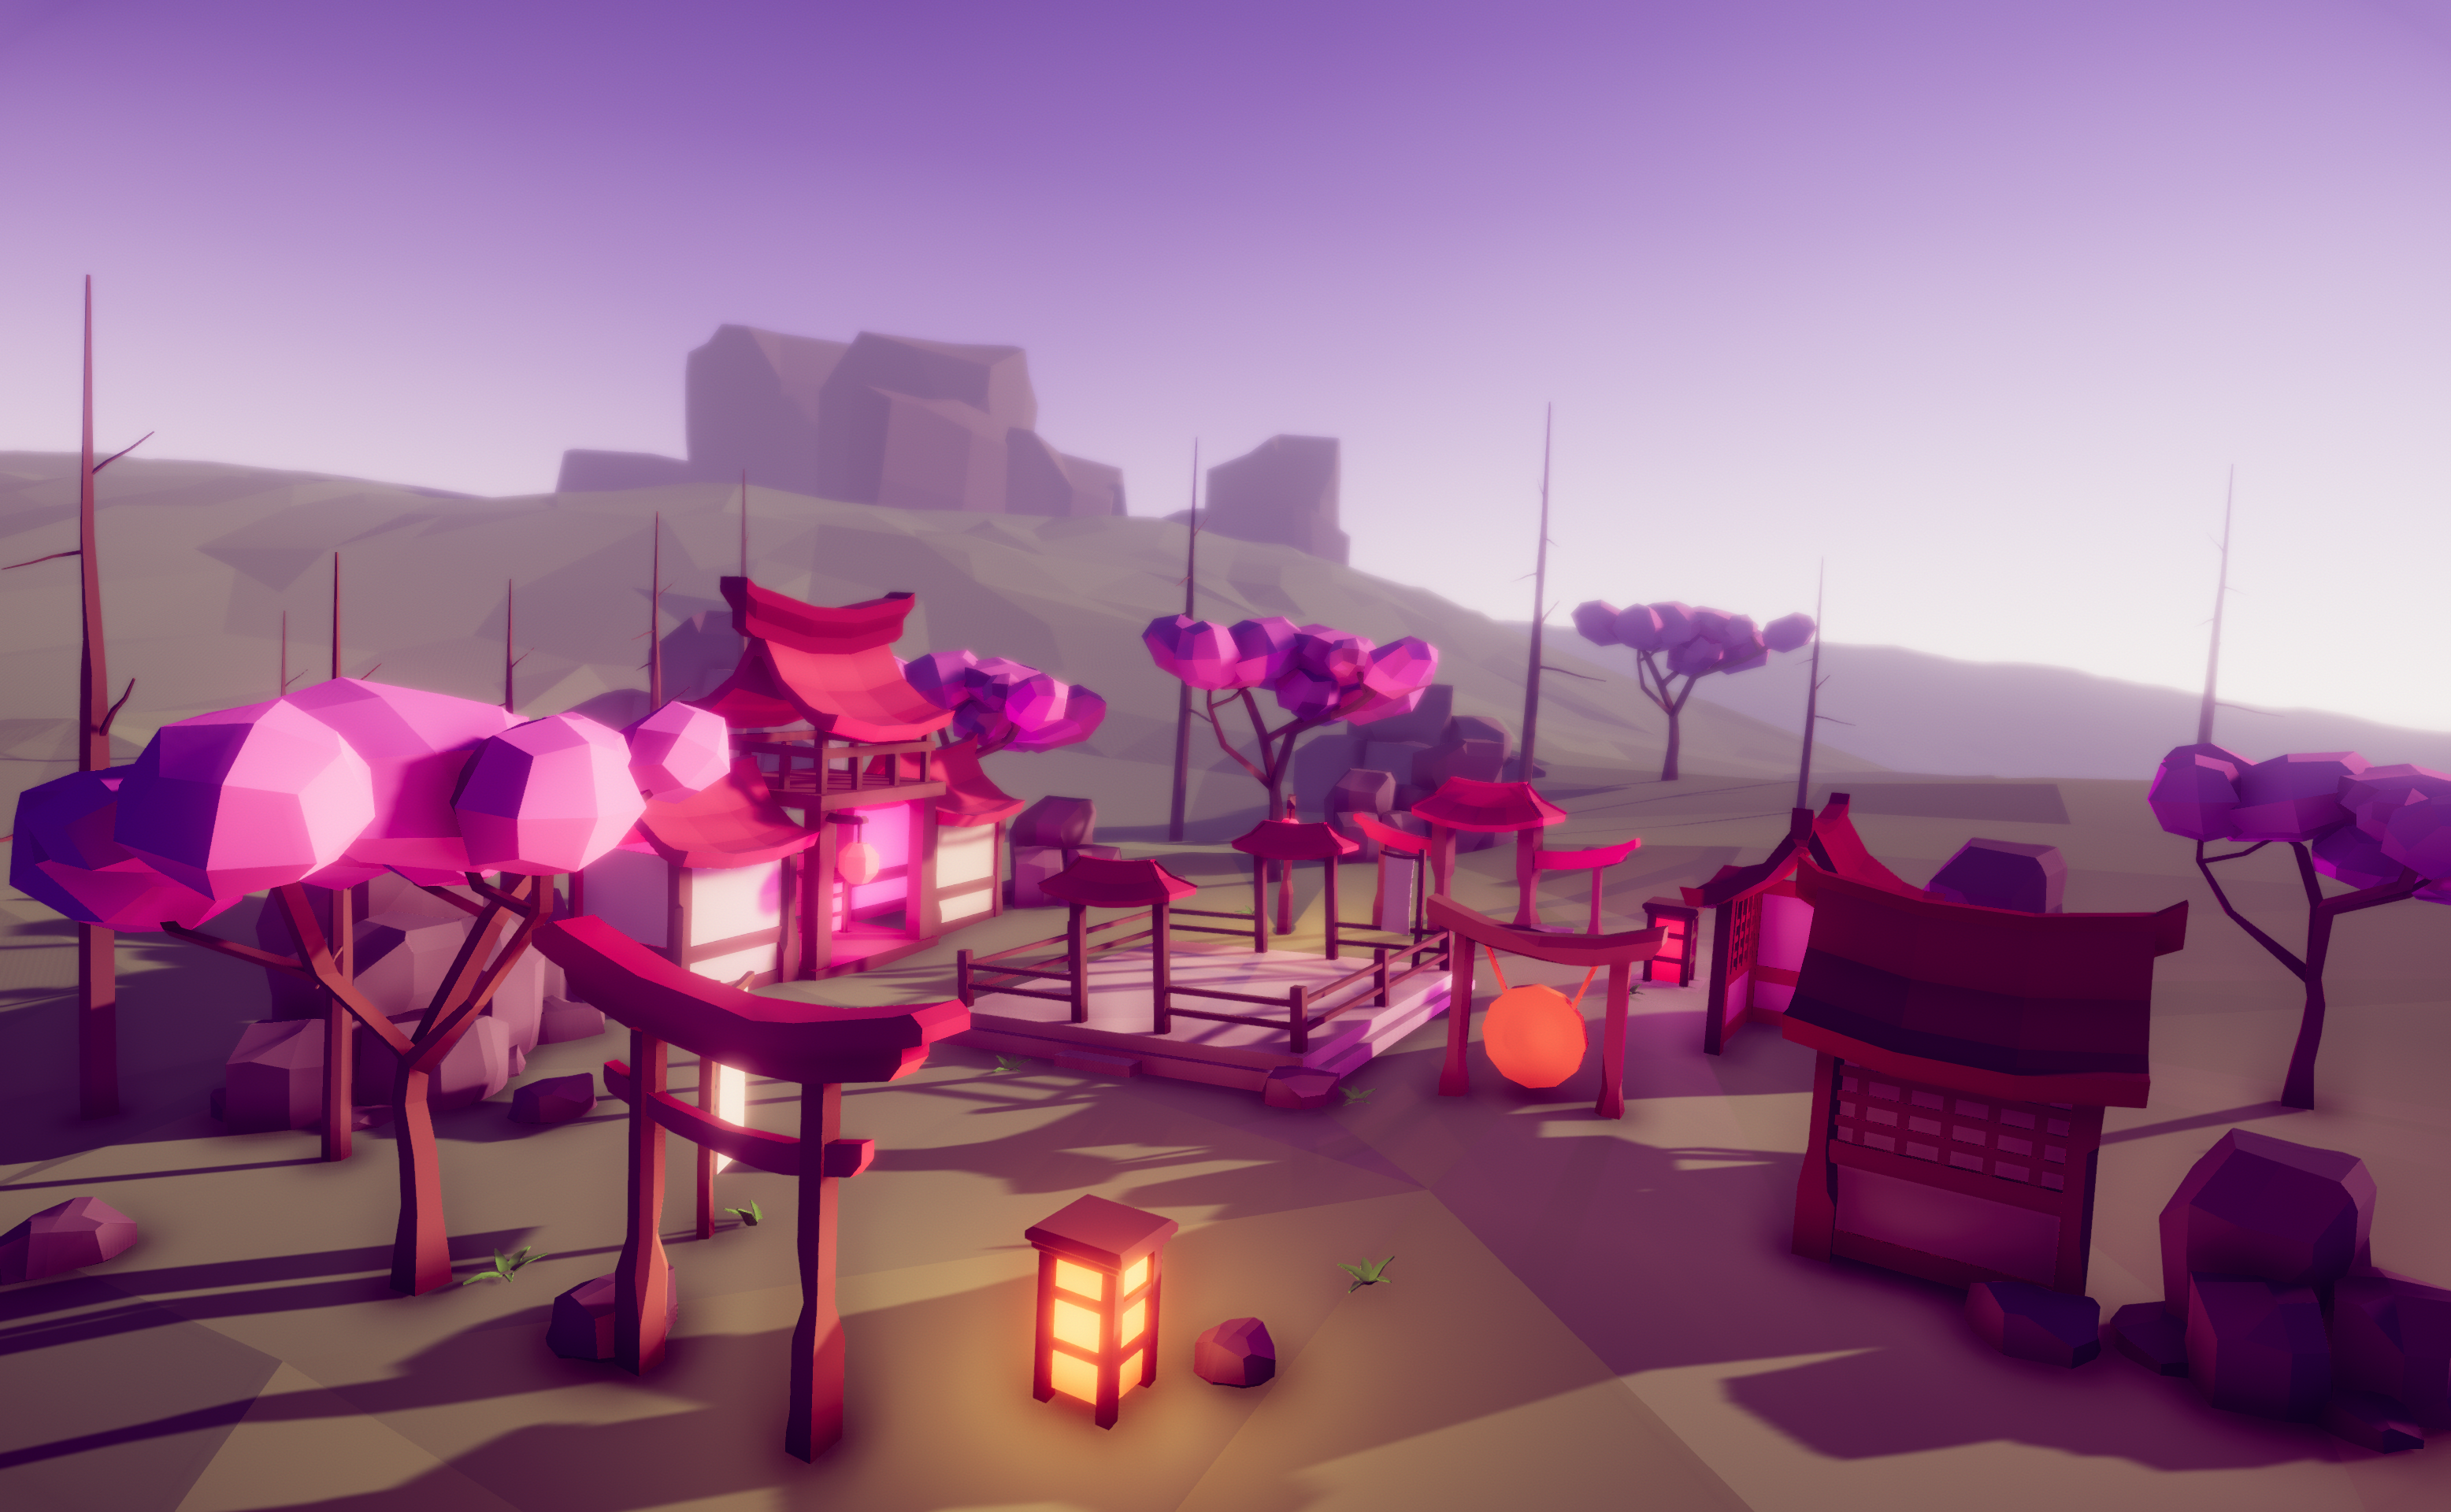 Asian village - LowPoly